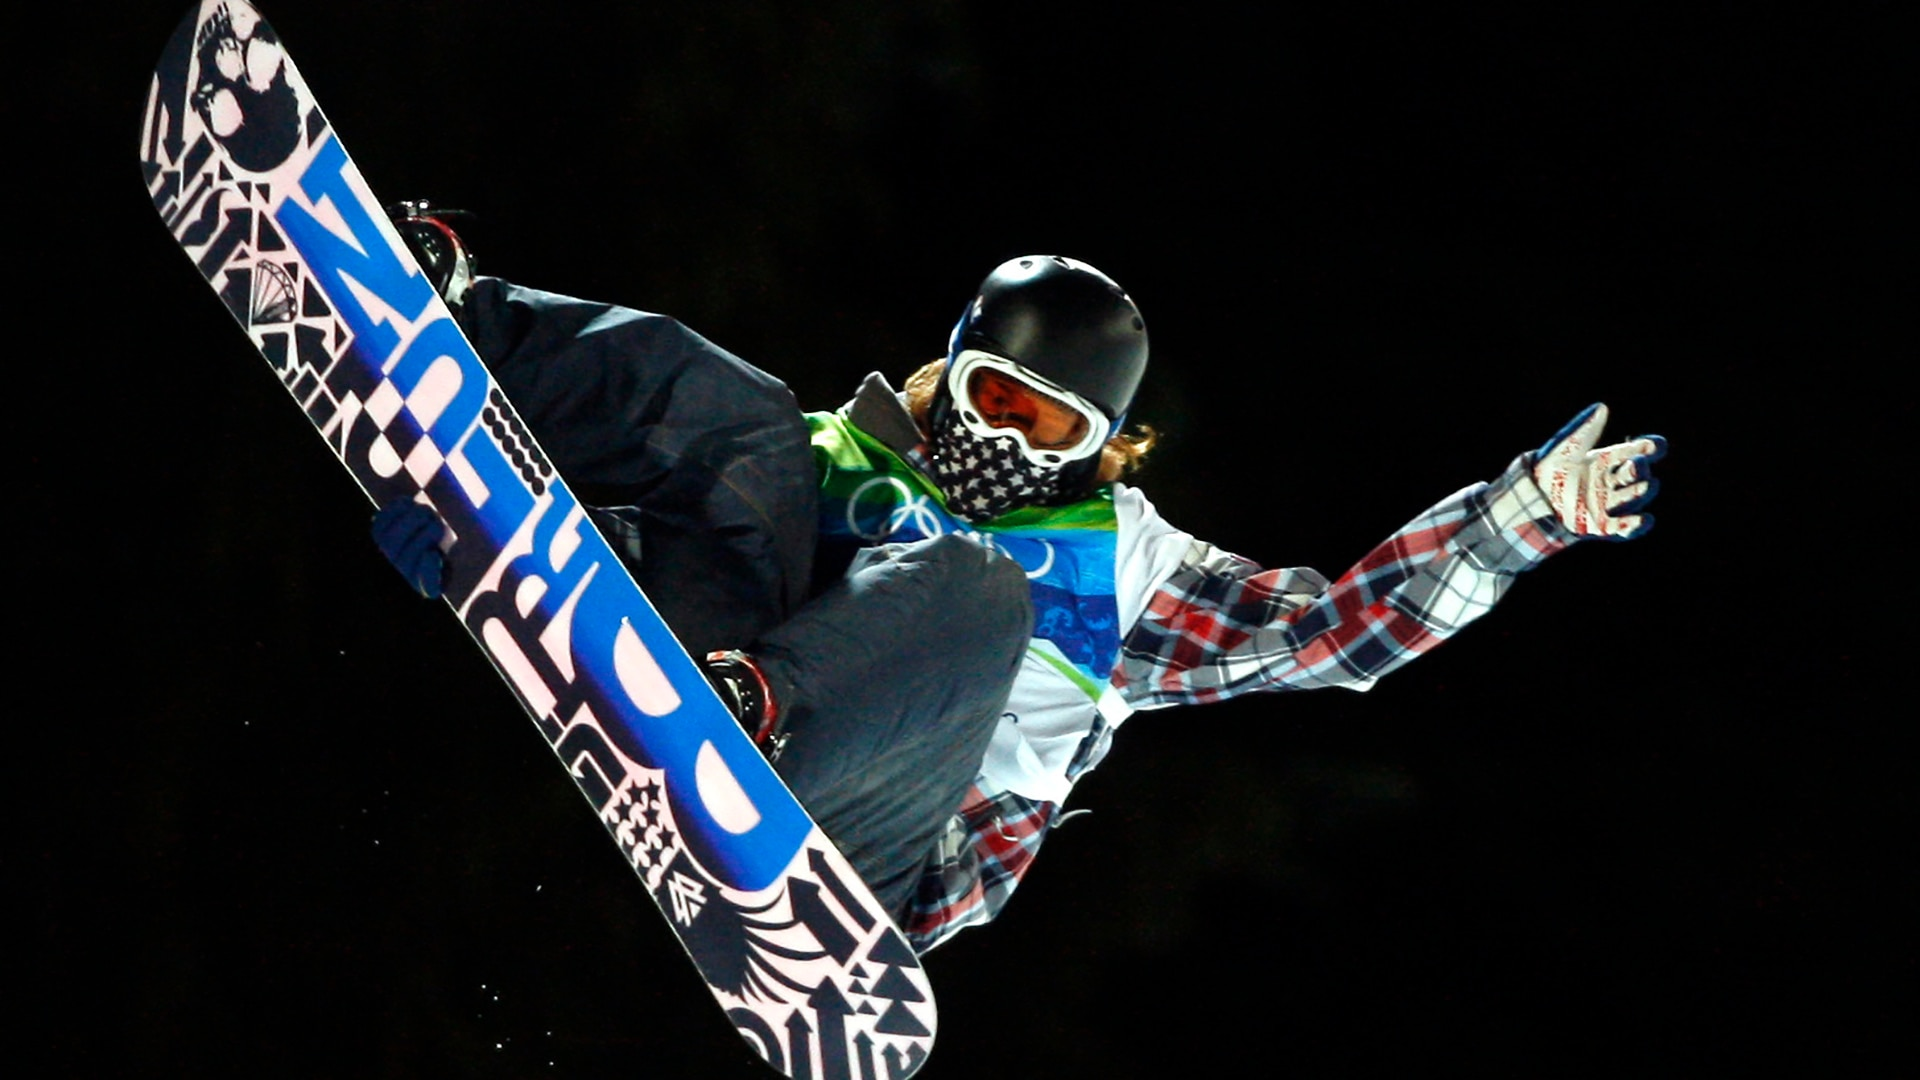 Shaun White competes in the finals of the men's snowboard halfpipe.